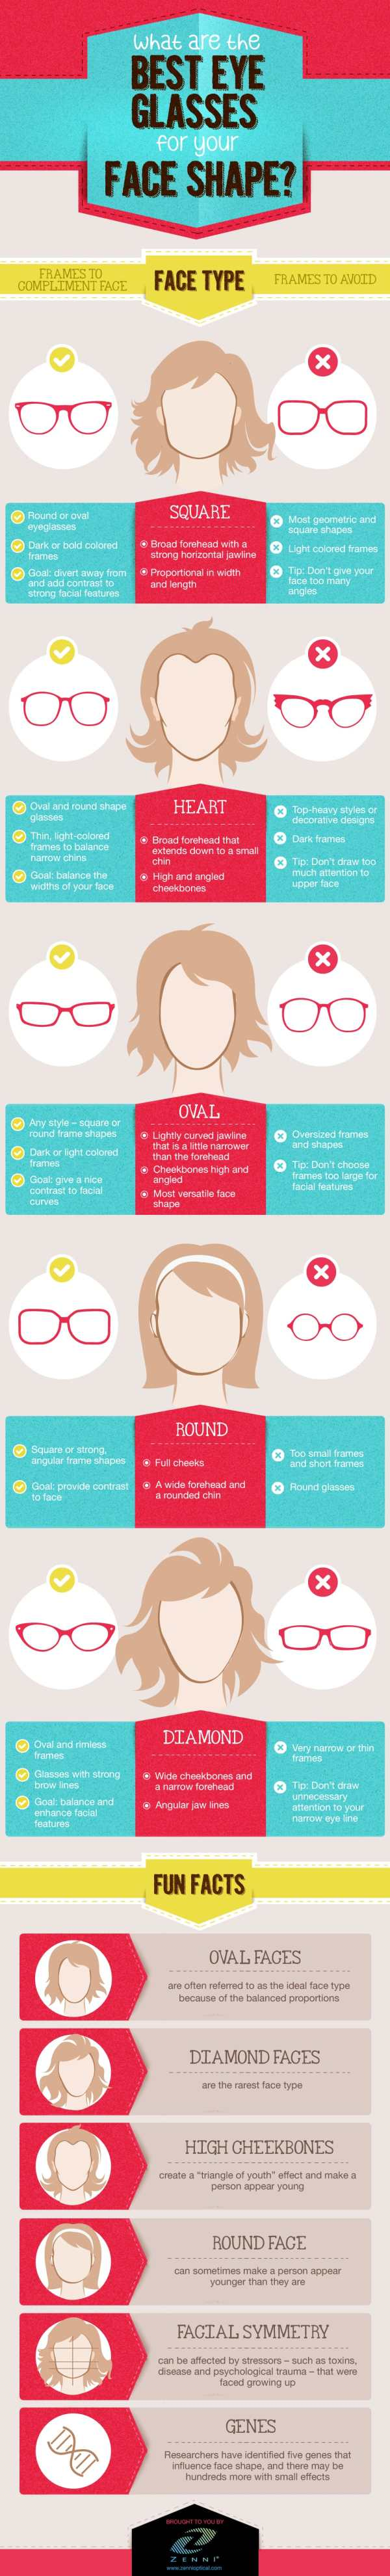 What Are The Best Eyeglasses For Your Face Shape? - Infographic